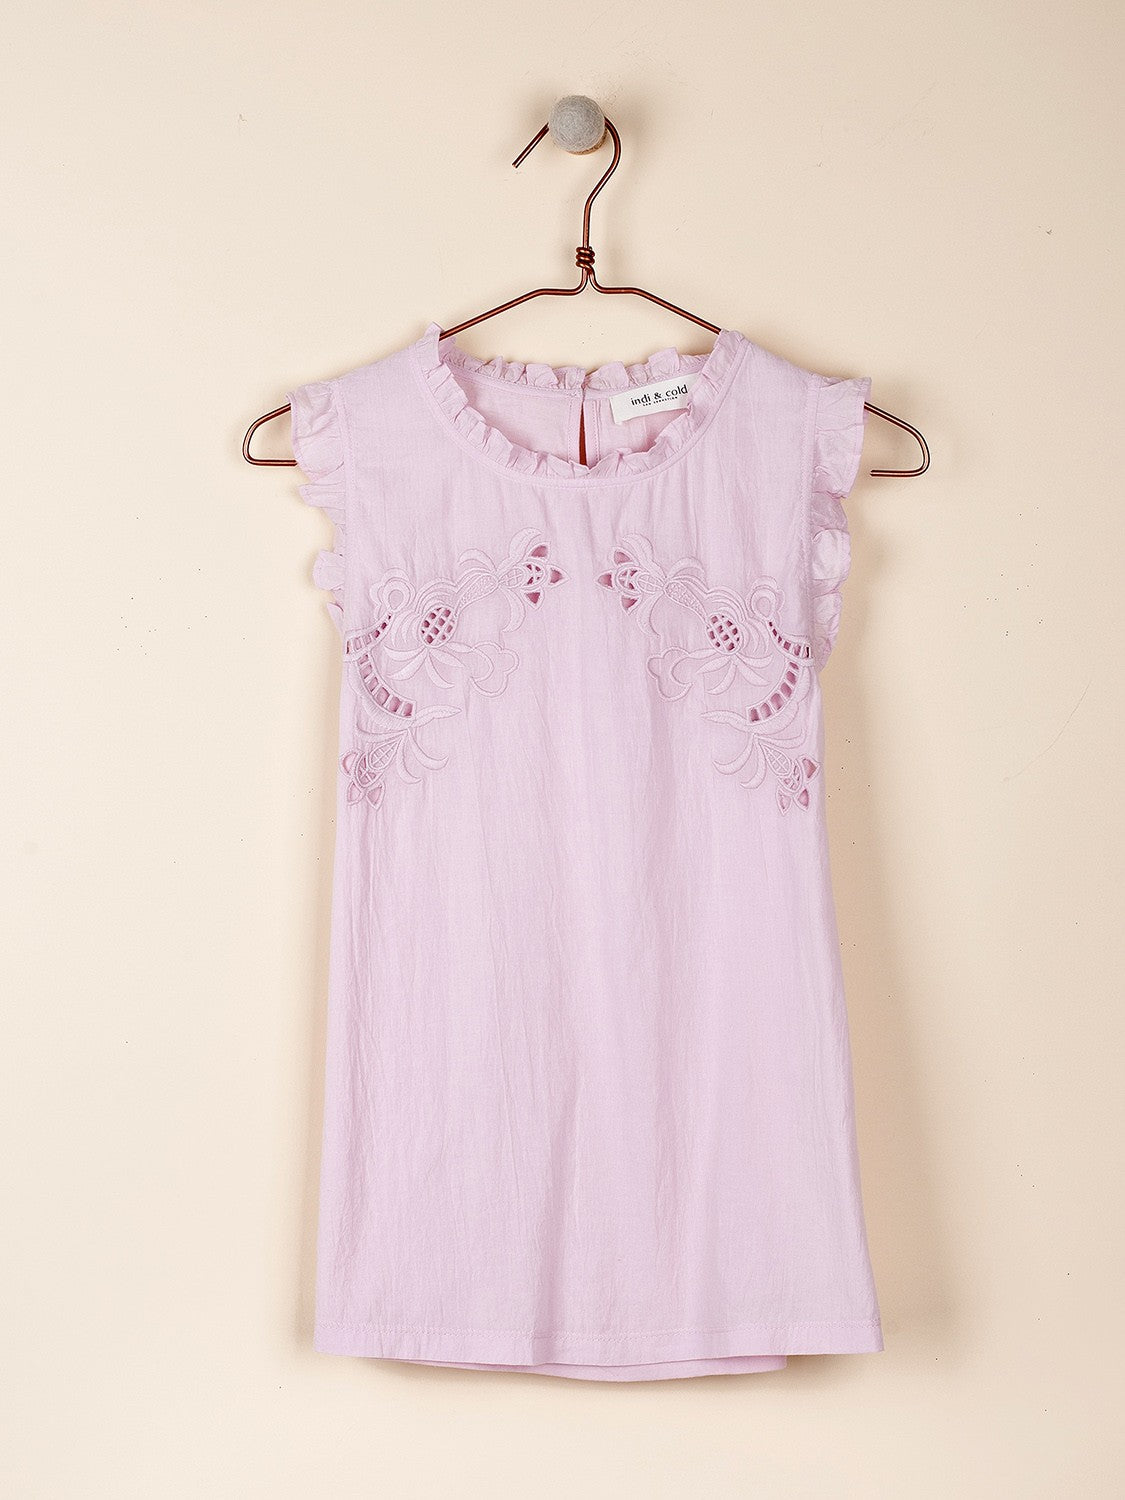 Embroidered Sleeveless T-Shirt in Lilac